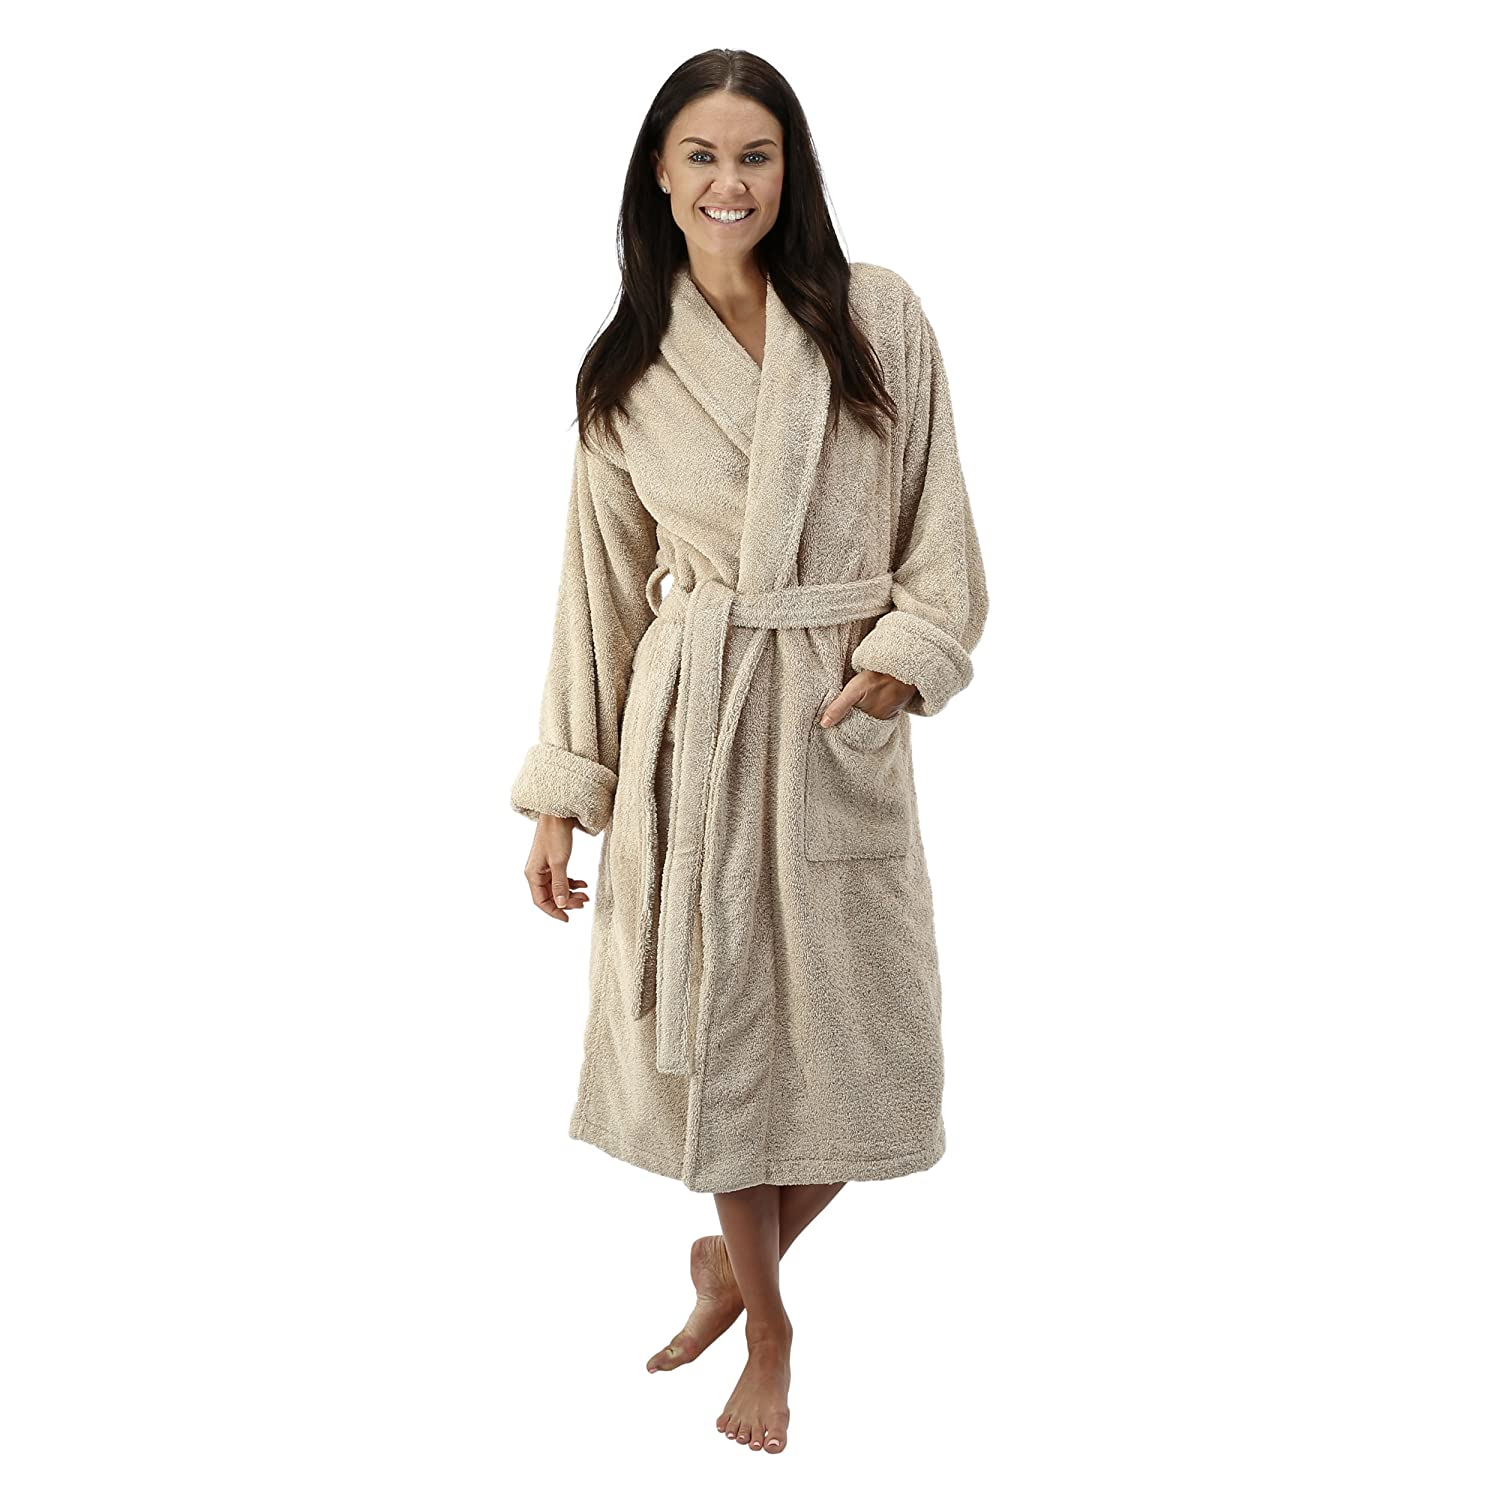 8495b05ef4 Comfy Robes Women s Deluxe 20 oz. Turkish Terry Bathrobe at Amazon Women s  Clothing store